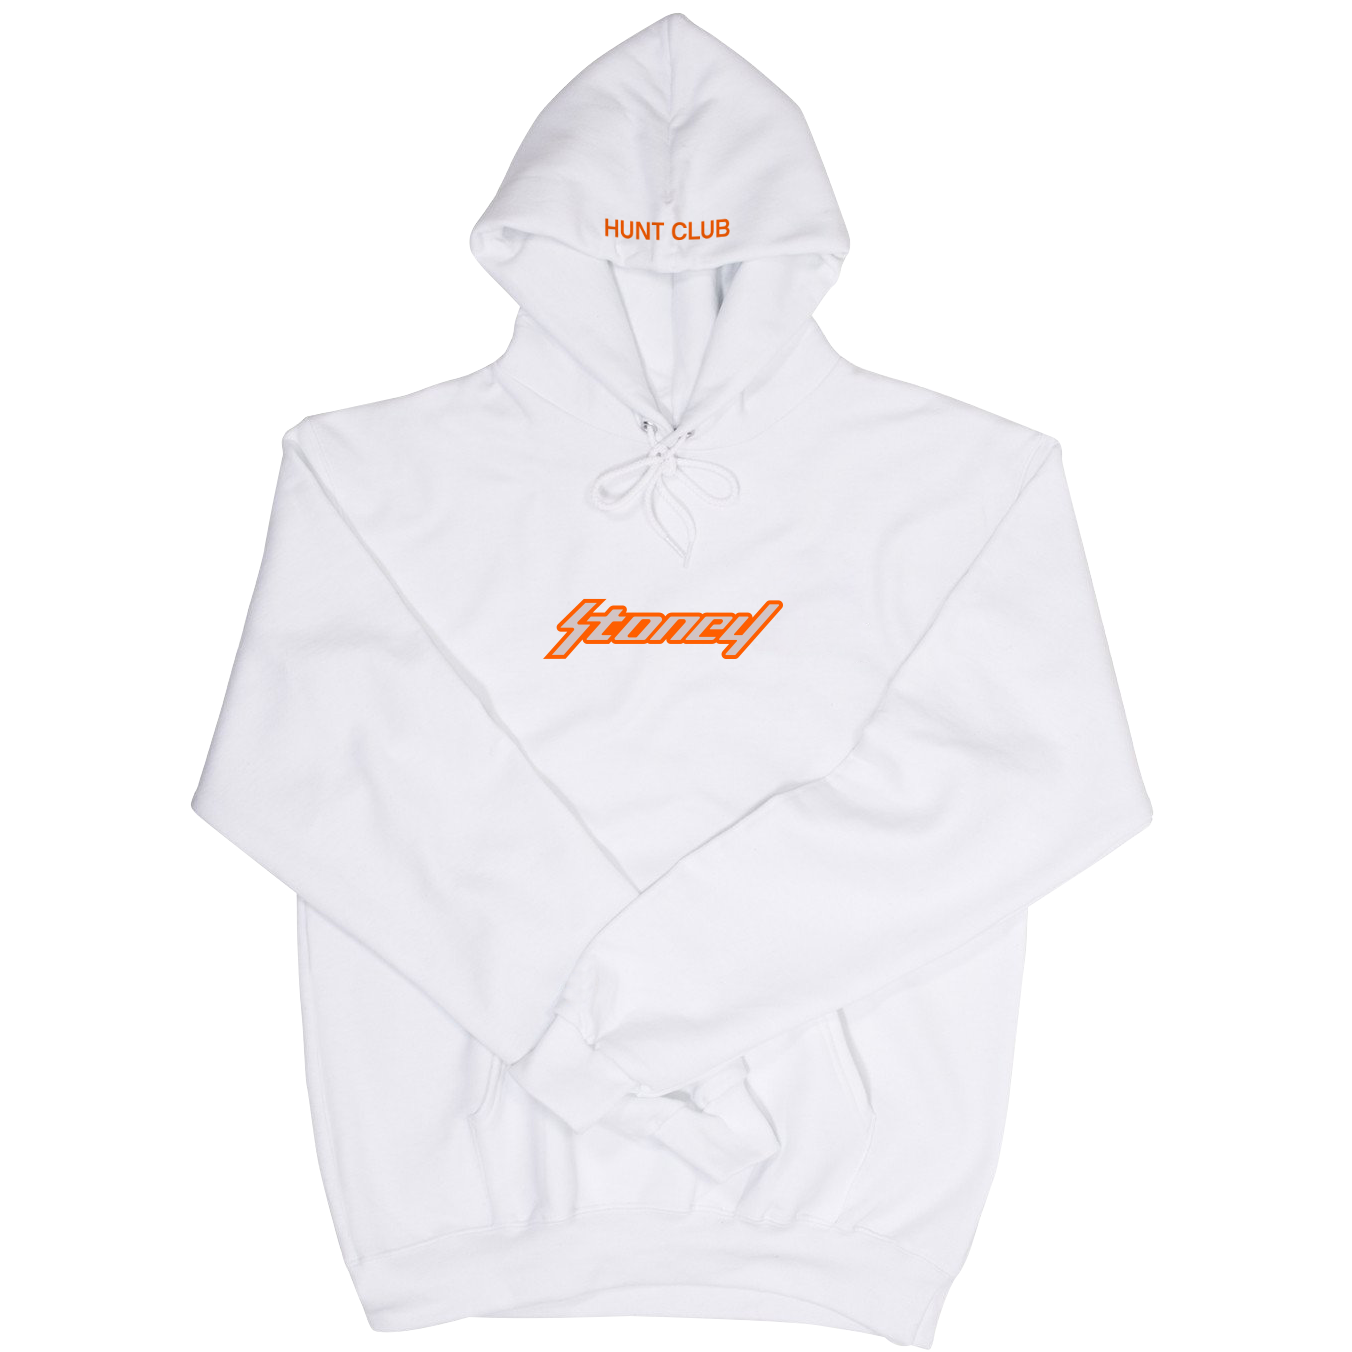 4afc345fd0eda Post Malone Stoney Hunt Club Hoodie | Clothes I Want in 2019 | Post ...